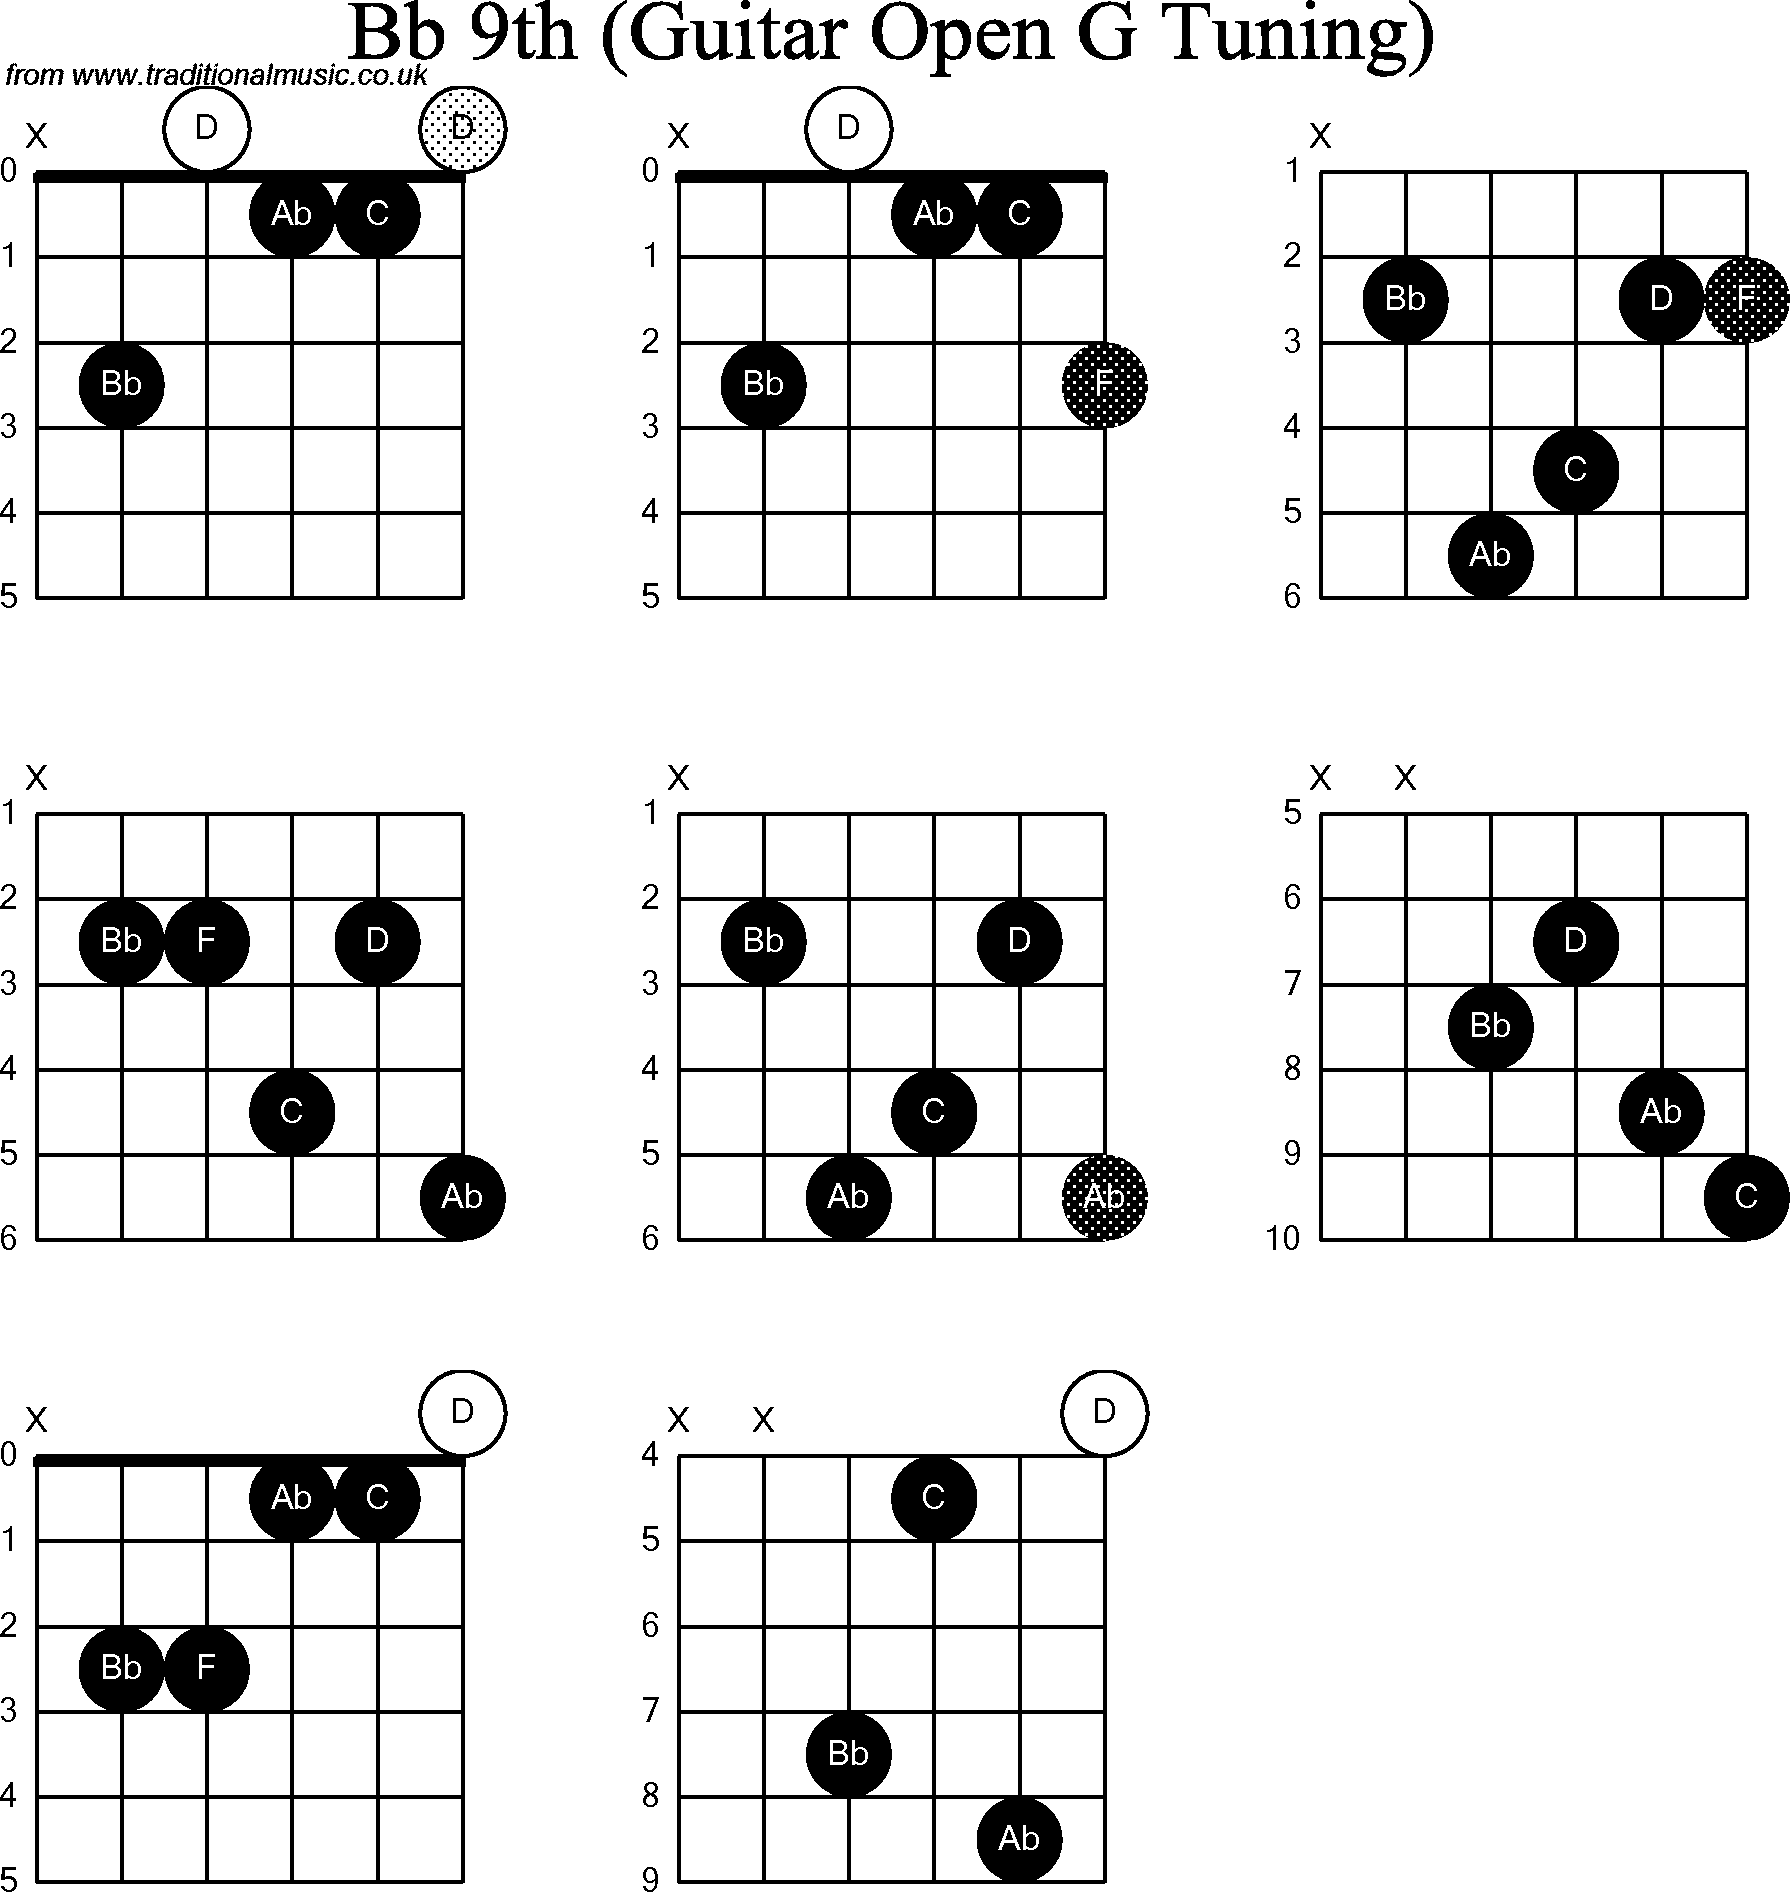 chord diagrams for  dobro bb9th